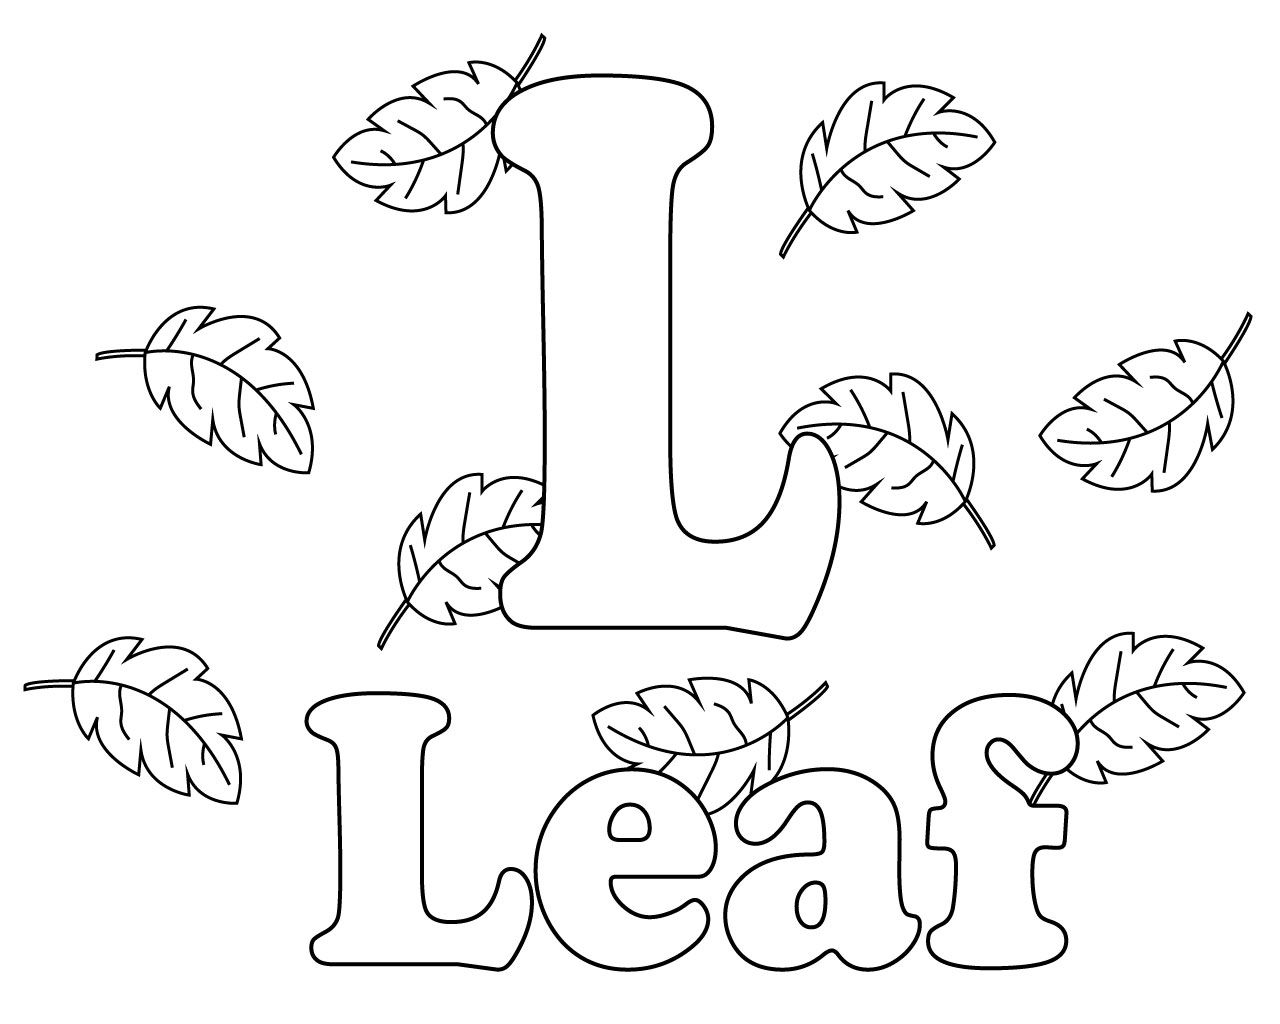 Free Printable Letter L Coloring Pages Coloring Pages Free Coloring Pages Ladybug Coloring Page